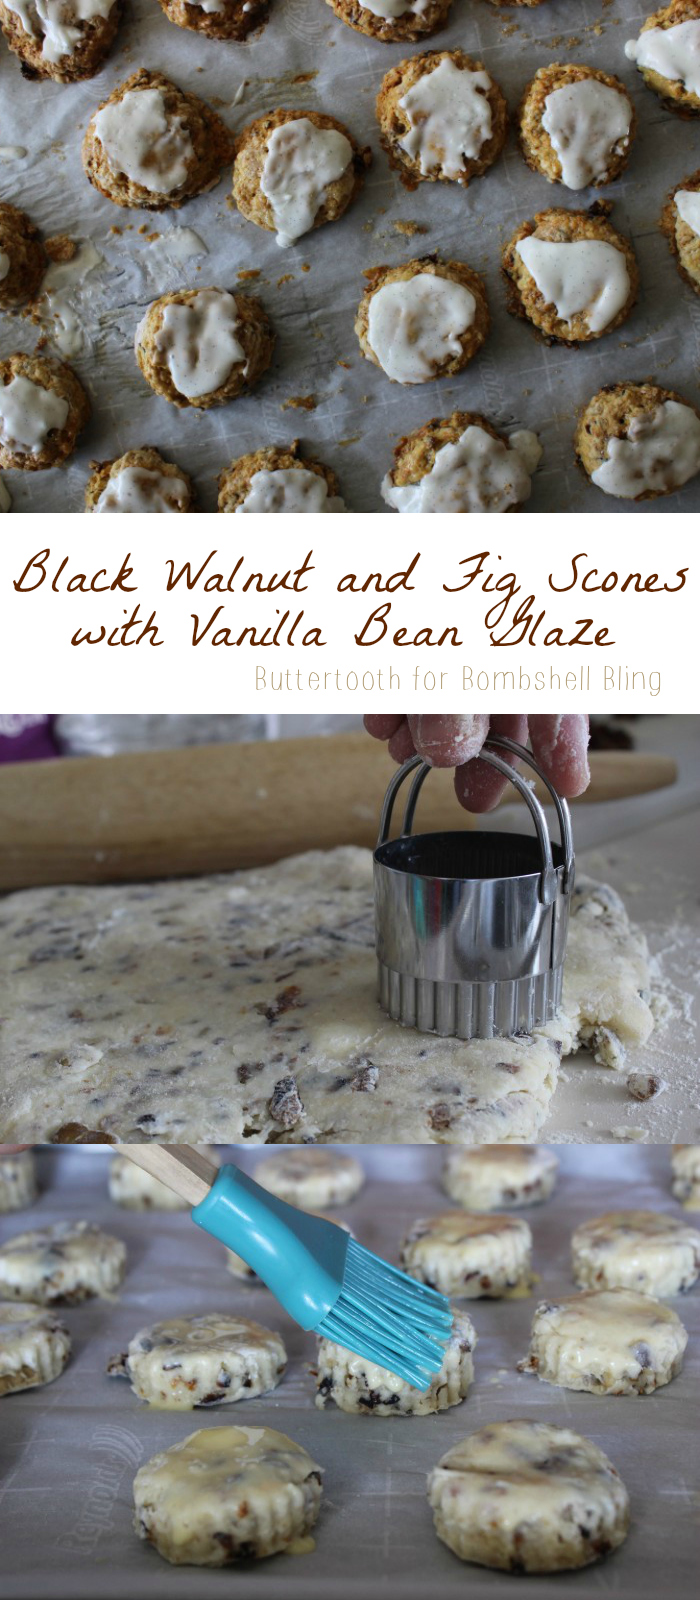 Black Walnut and Fig Scones with Vanilla Bean Glaze